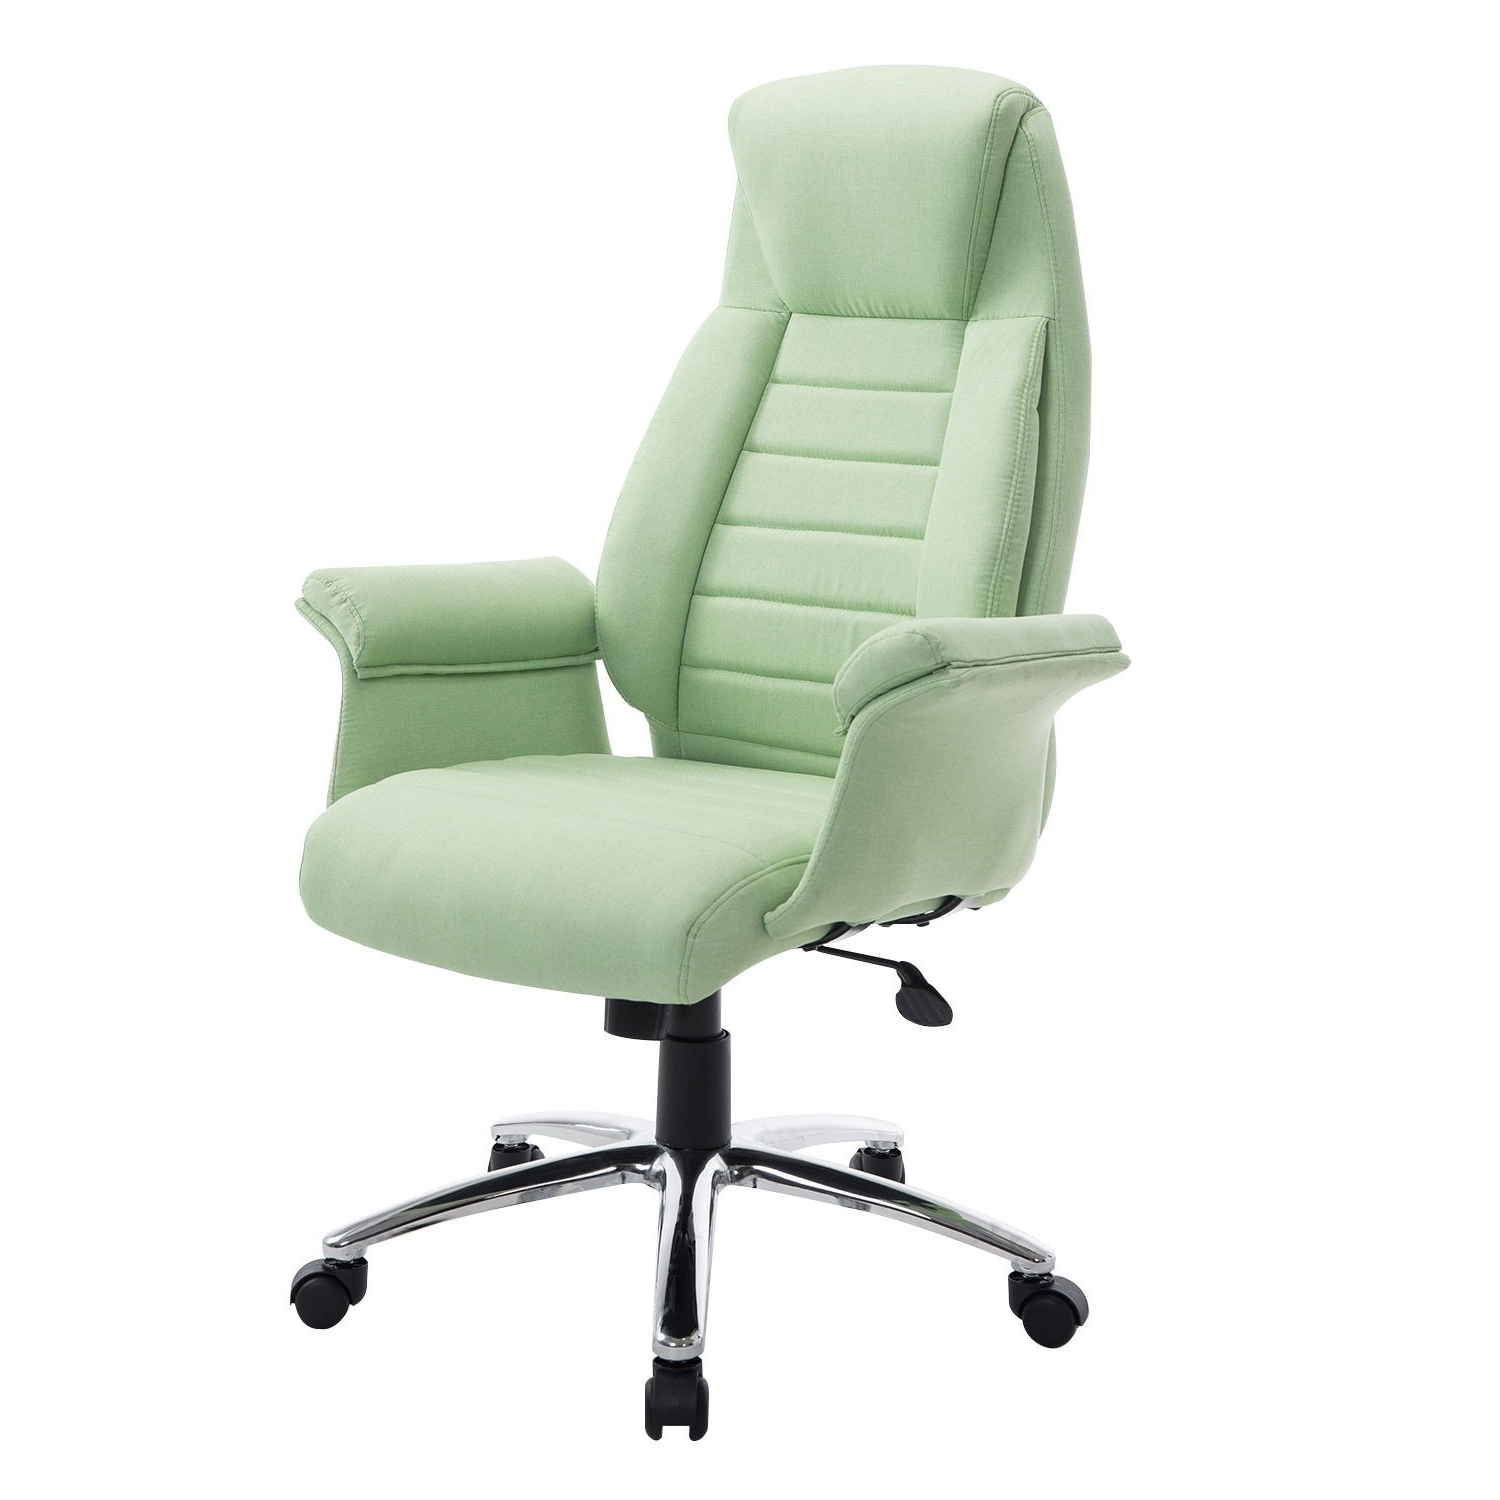 Fashionable Green Executive Office Chairs With Regard To Homcom Executive Heated Massage Office Chair – Cream (View 6 of 20)